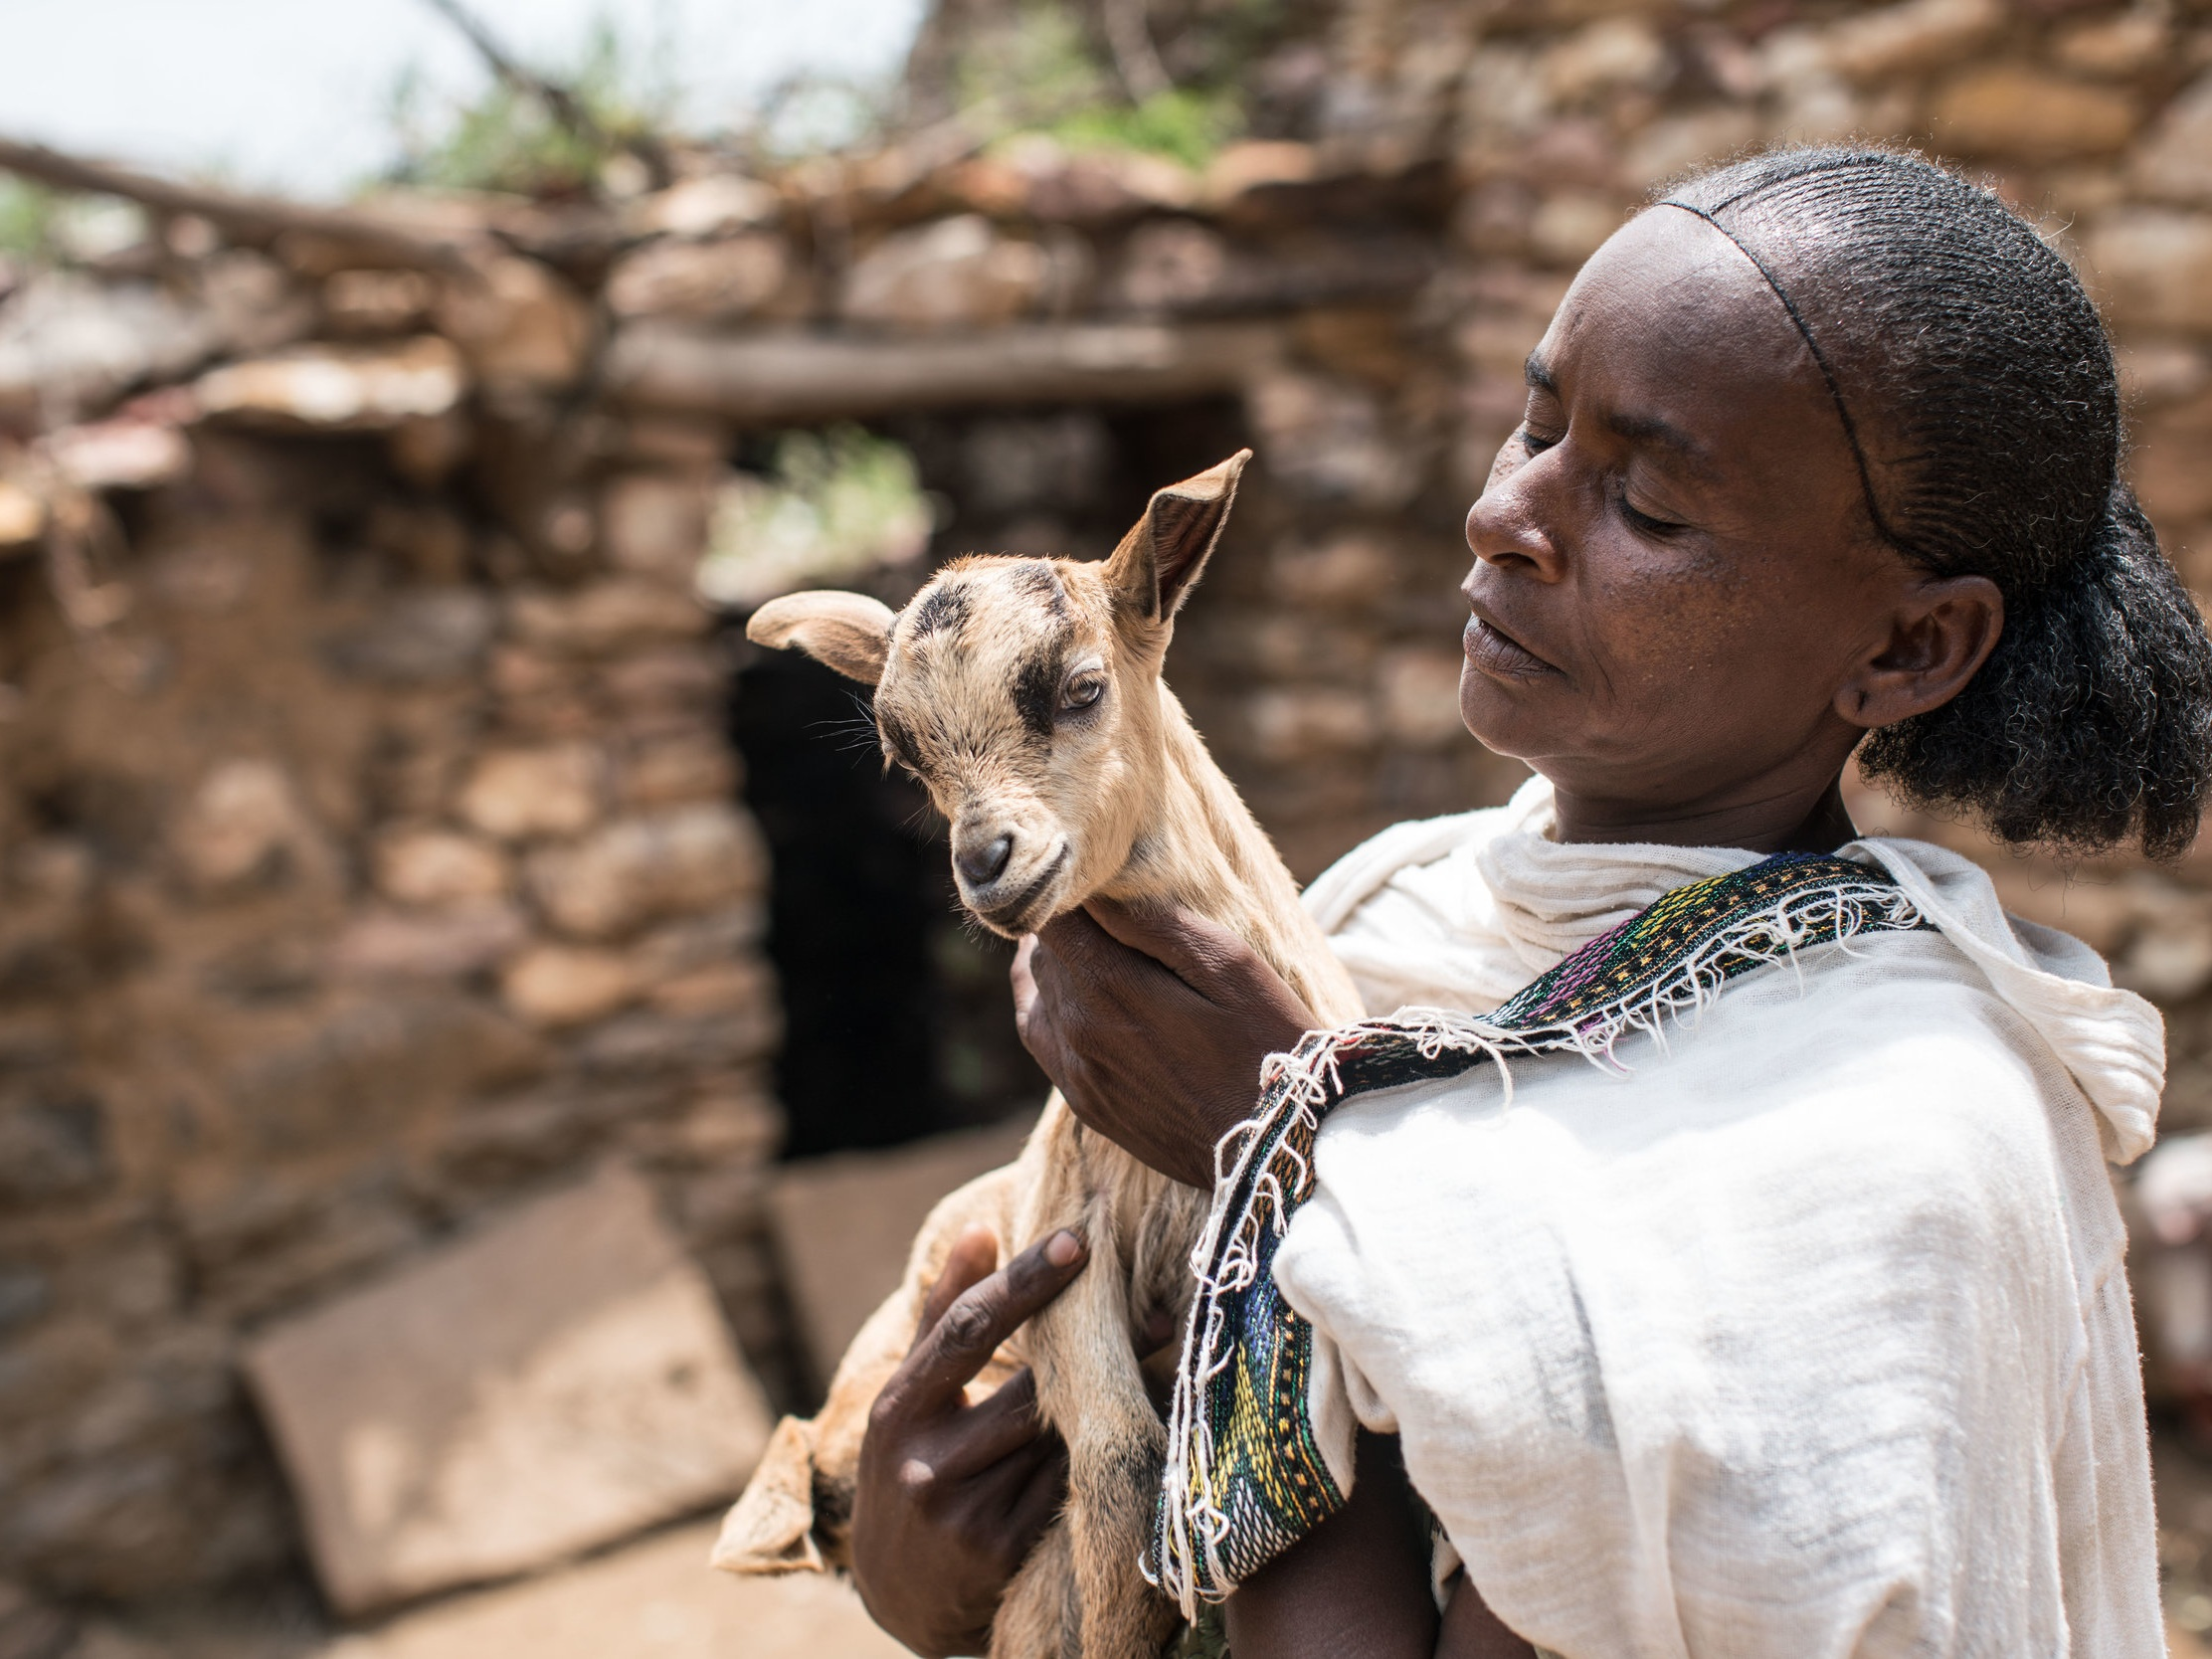 This is Mebrehit Mebrahtoa, a mother of eight from the Tigray Region in Ethiopia. In 2013 Mebrehit was given three goats by Farm Africa. She has since transferred three to another woman, sold nine and increased her herd to 17 goats which provide income for her family.